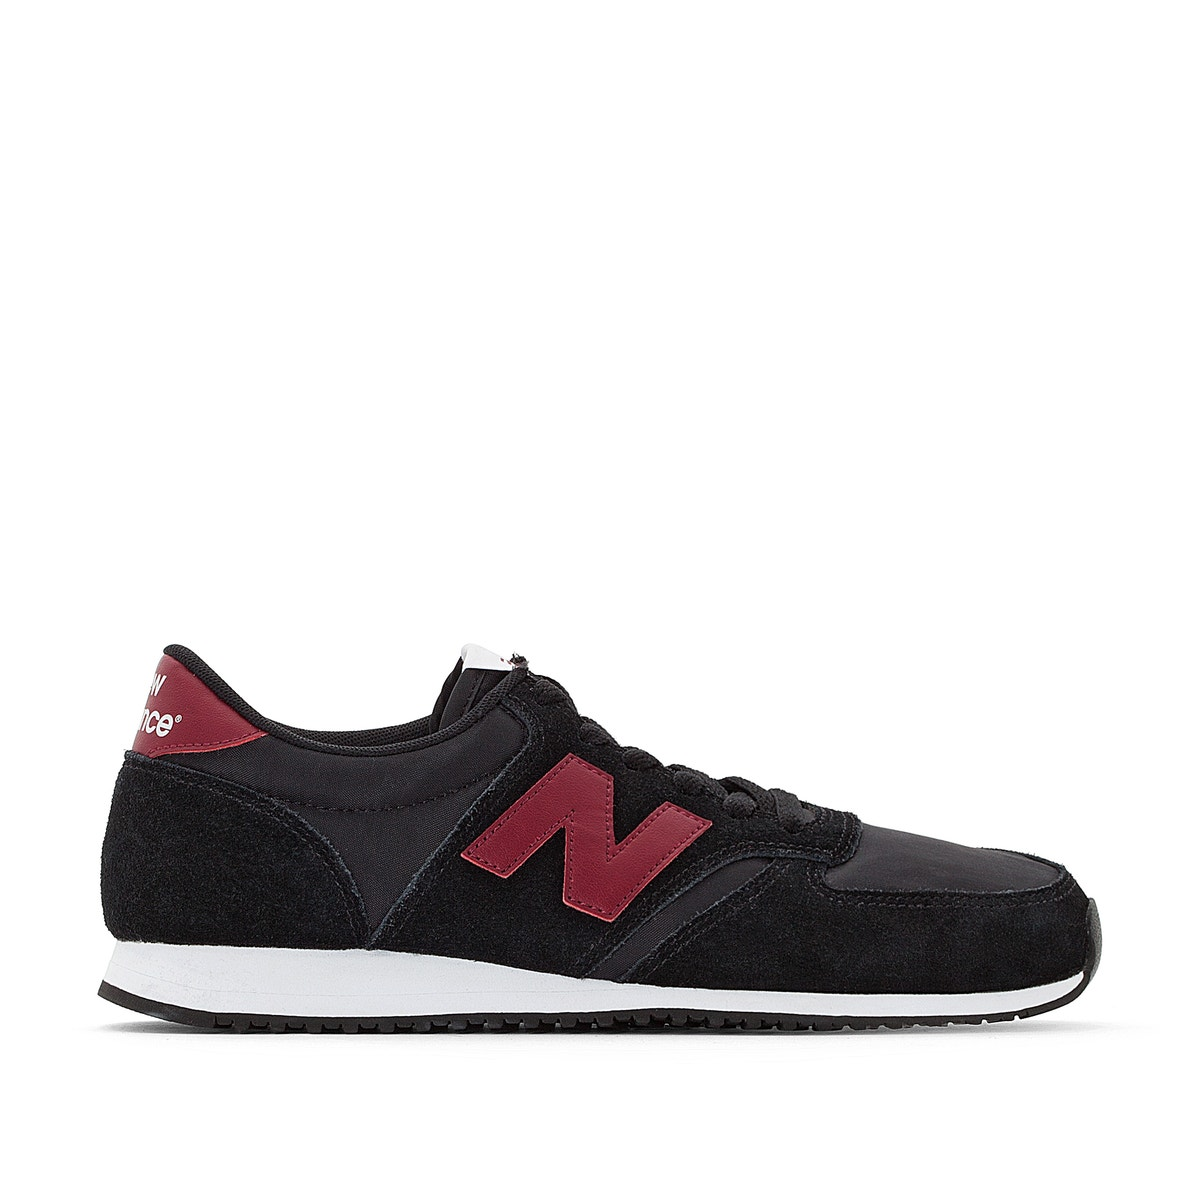 New Balance - New Balance Sneakers U420BLK 350124974 - 6527 laredoute   ανδρικα   sneakers   low cut